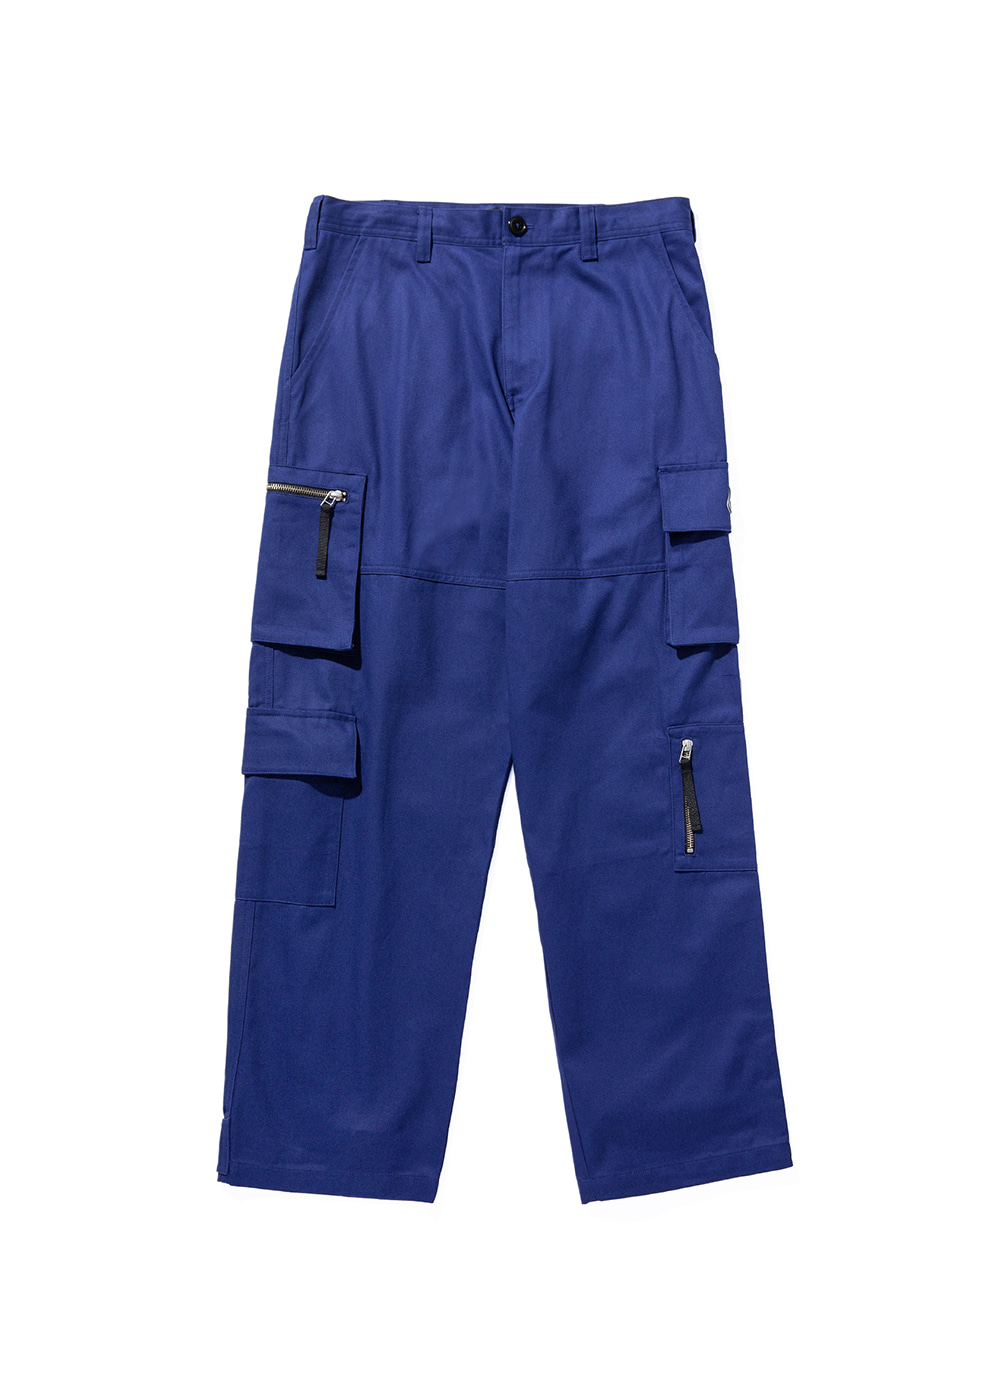 LMC ZIPPER CARGO PANTS blue